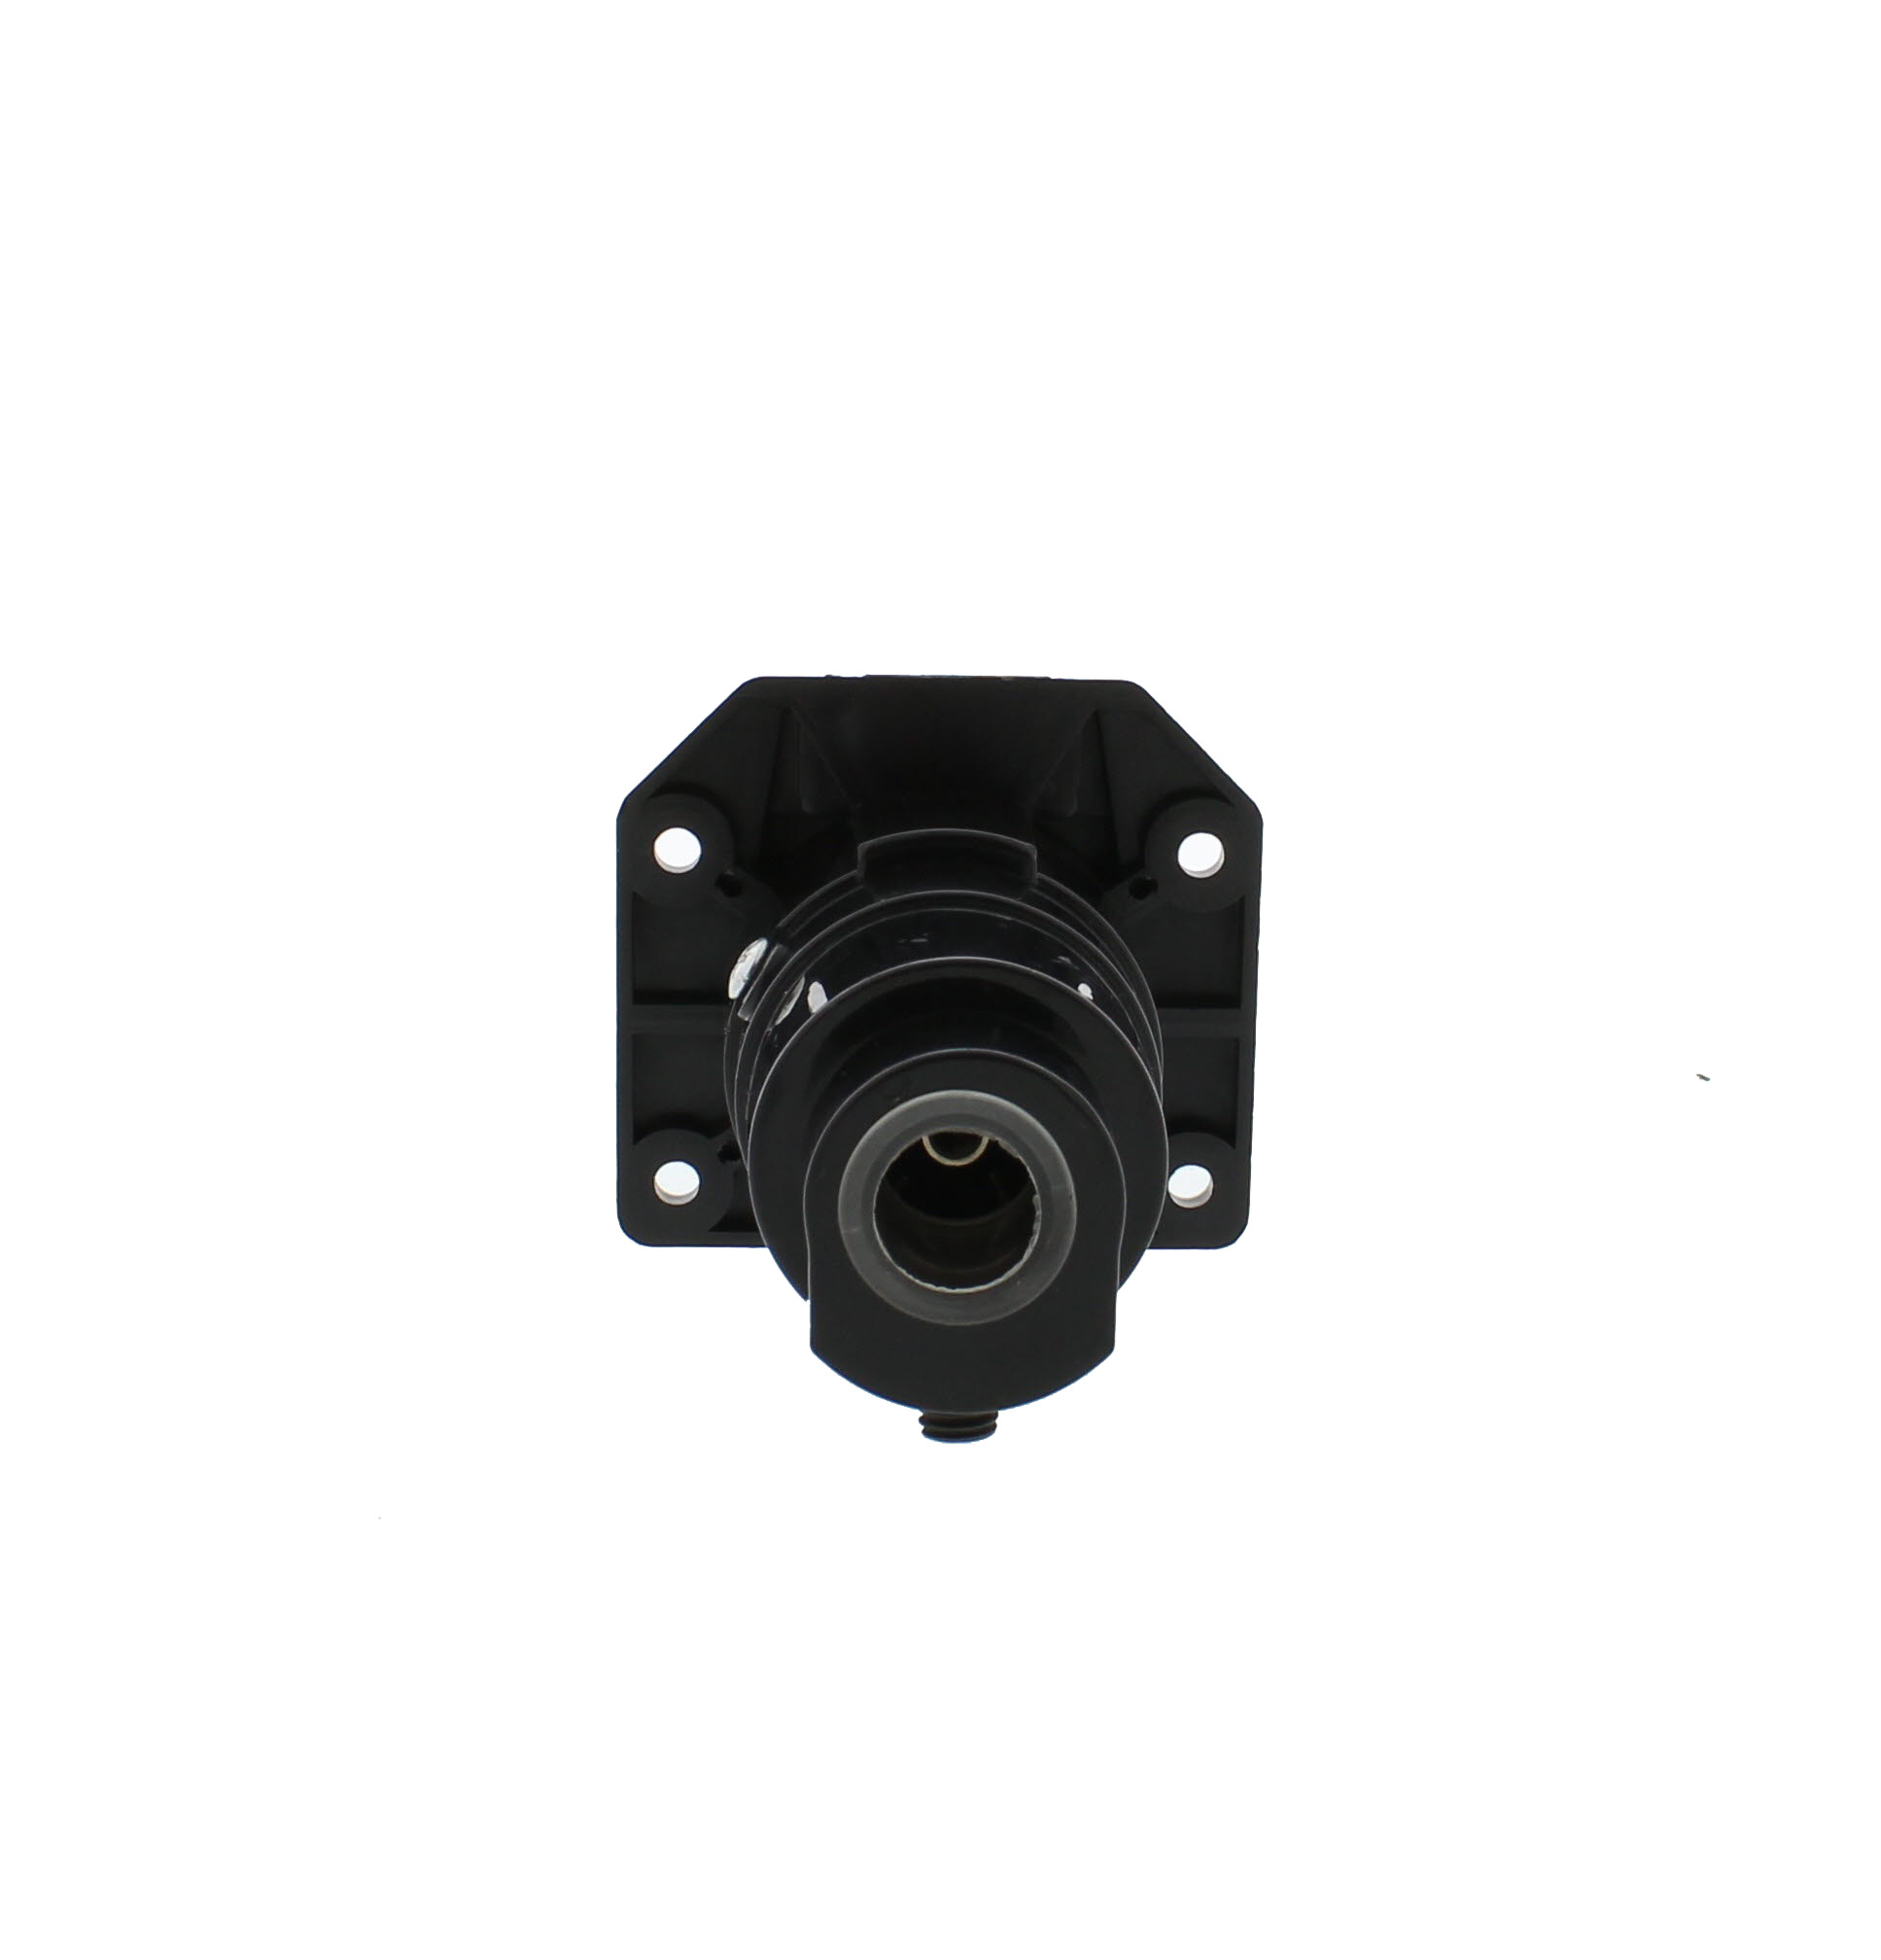 Abn 7 Pin Trailer Connector  U2013 12v 7 Way Pole Round Auto Electrical Wiring